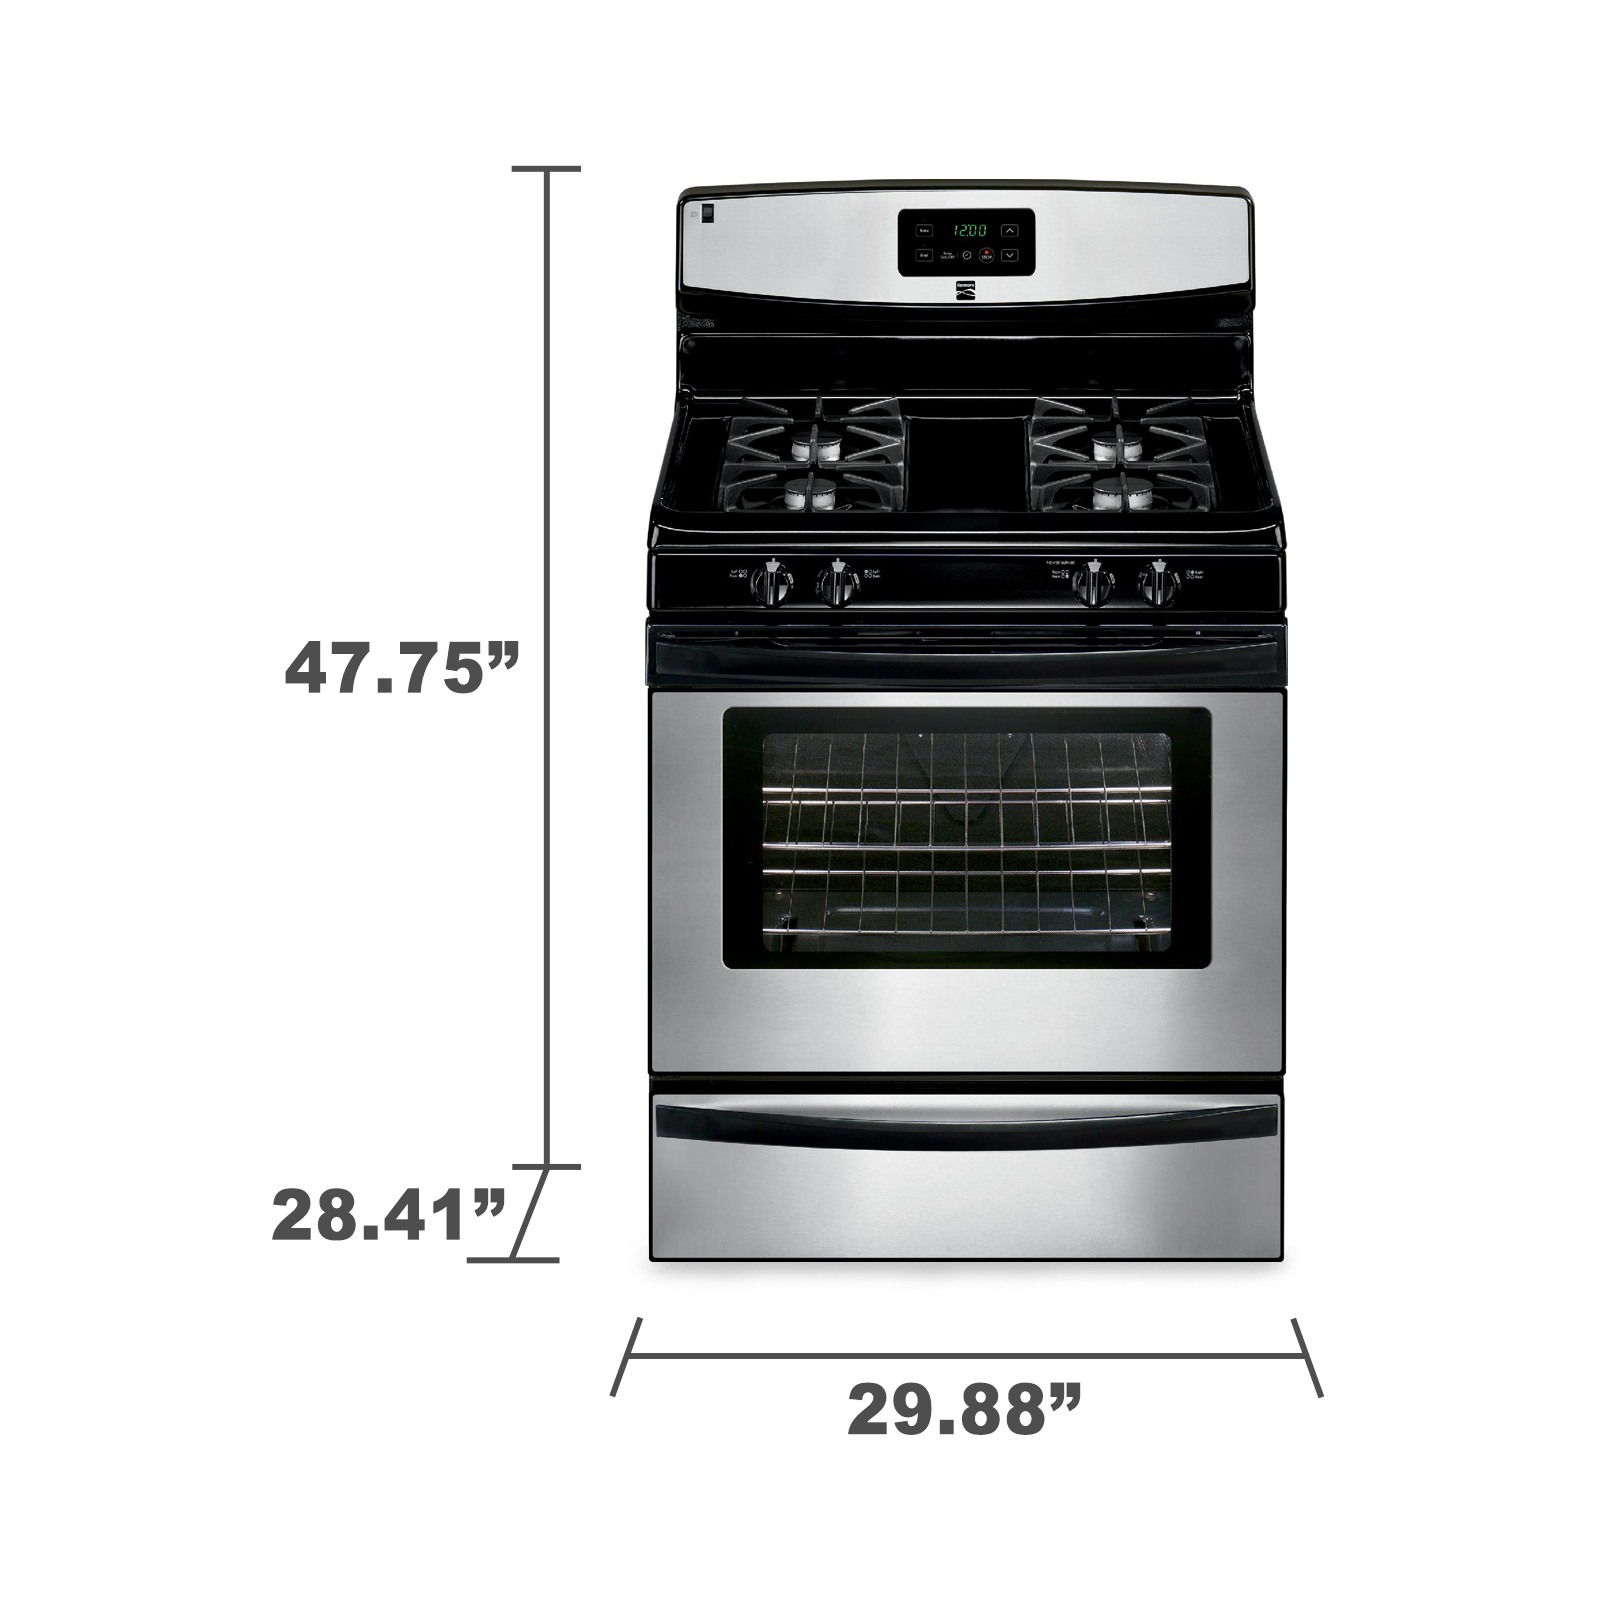 Kenmore 73233 4.2 cu. ft. Gas Range w/ Broil & Serve™ Drawer - Stainless Steel